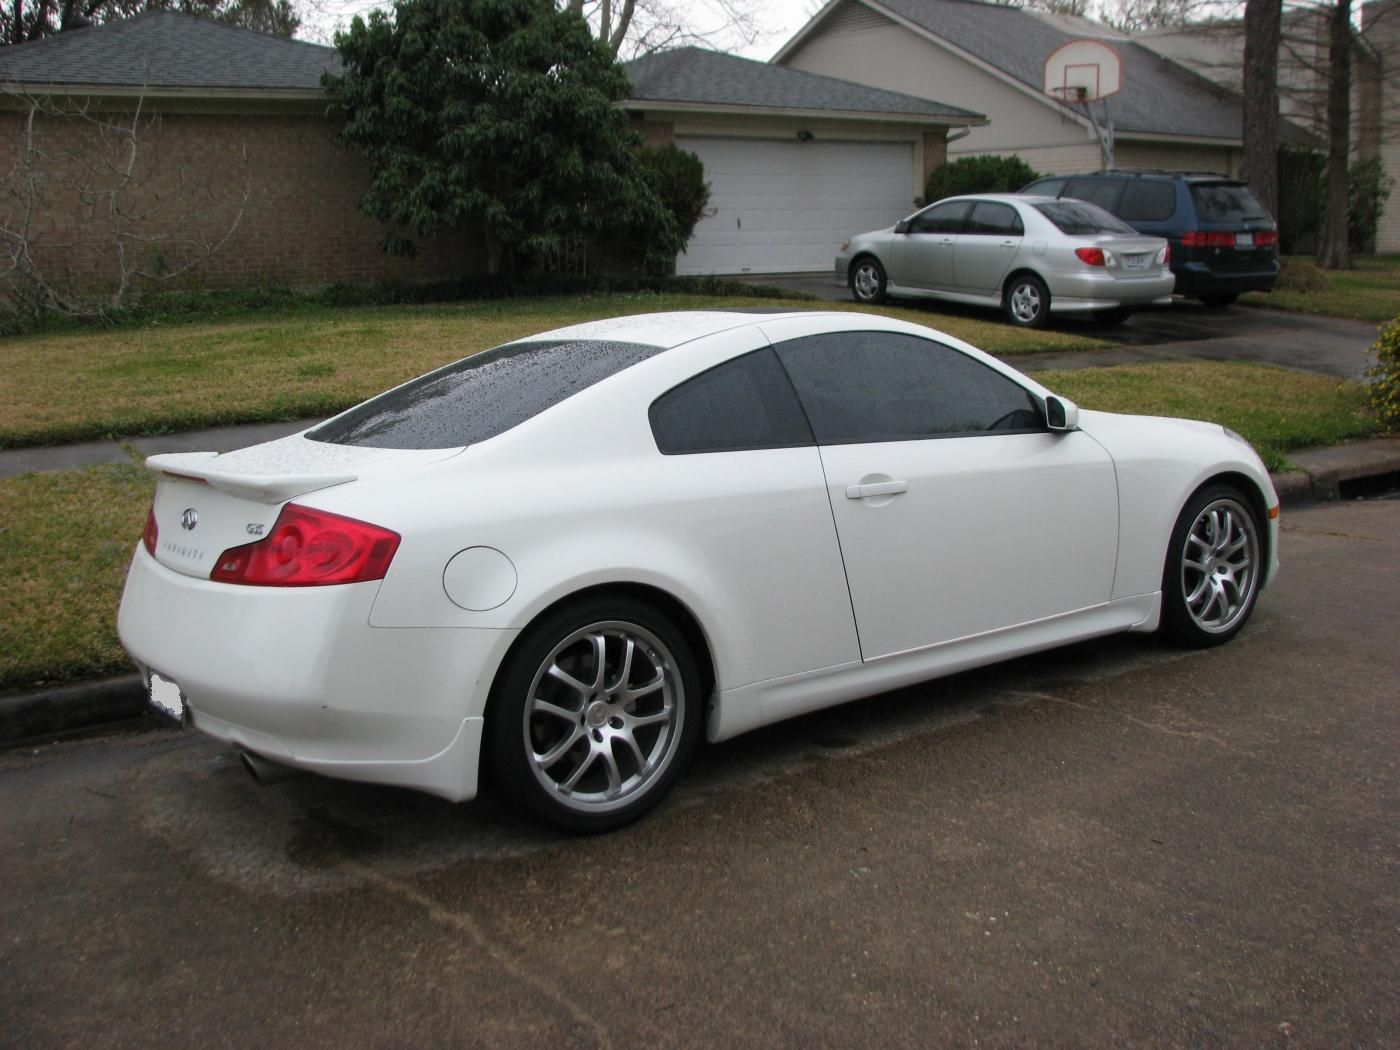 Infiniti g35 coupe google search infiniti g coupe respect my infiniti g35 coupe google search infiniti g coupe respect my gangster pinterest search coupe and infinity vanachro Gallery